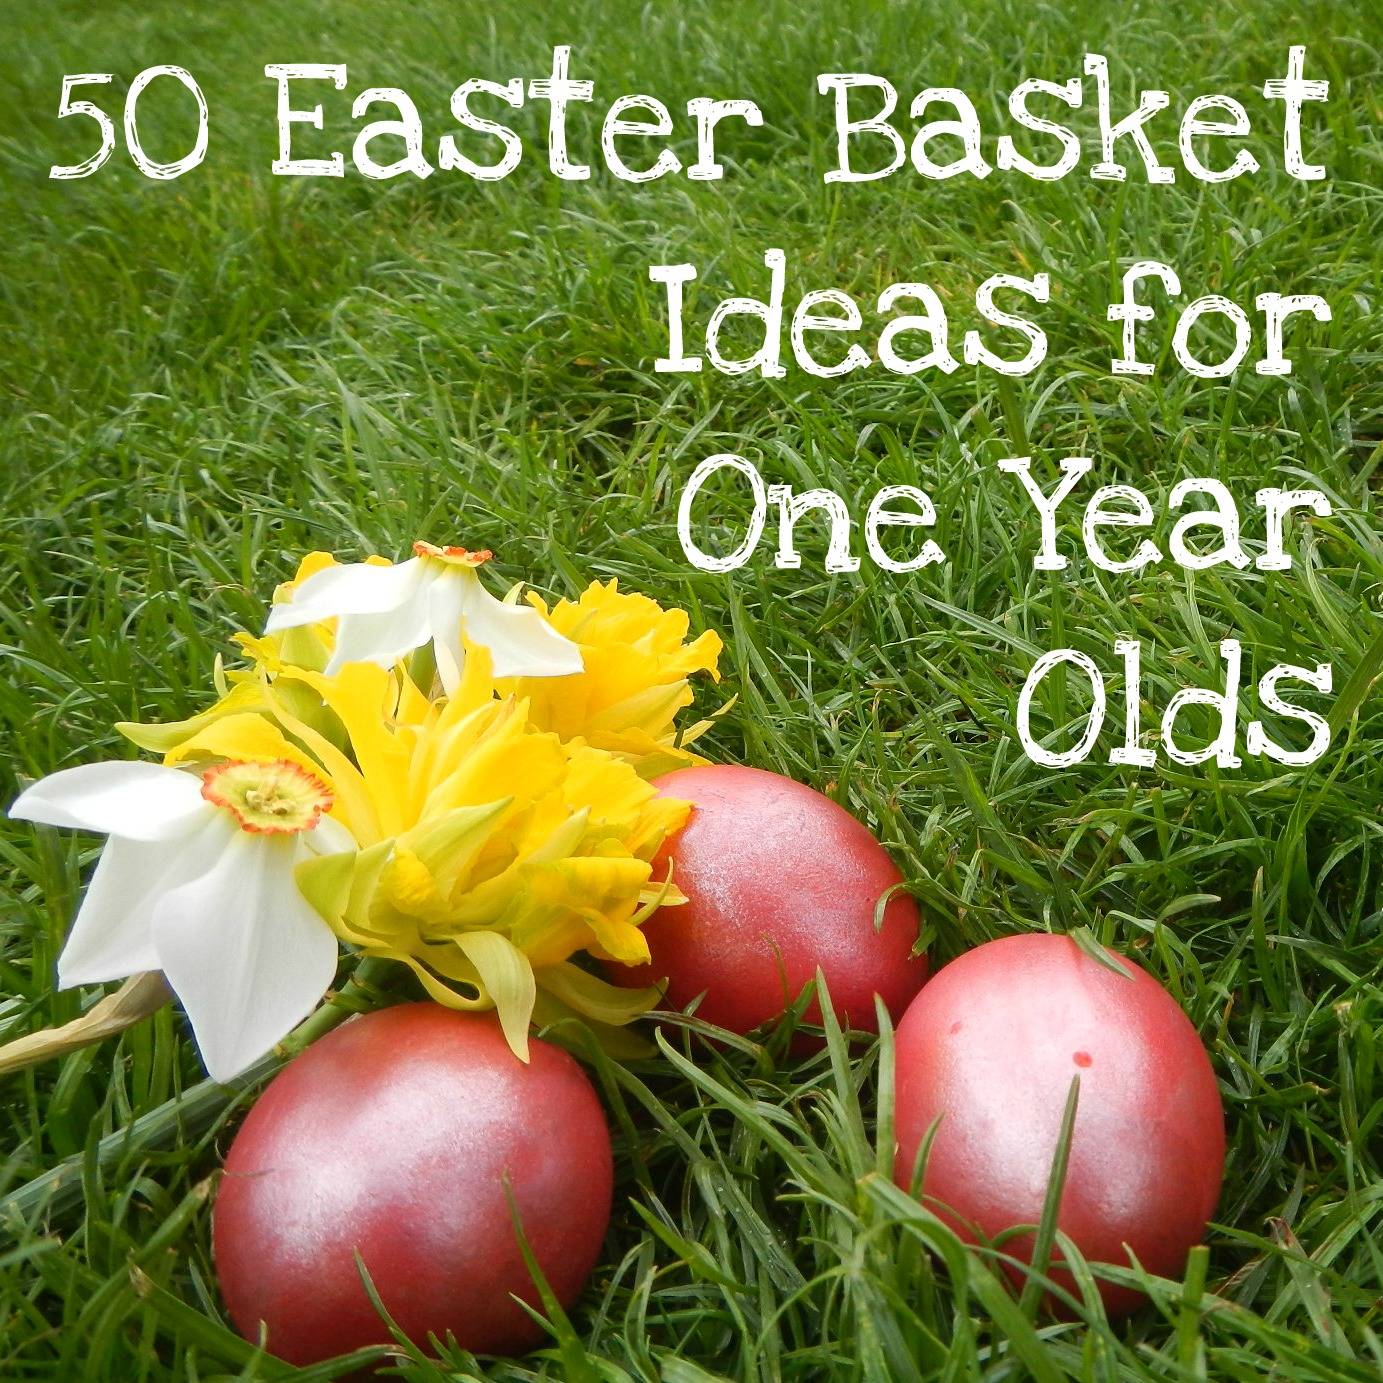 Messy wife blessed life 50 easter basket ideas for one year olds 50 easter basket ideas for one year olds negle